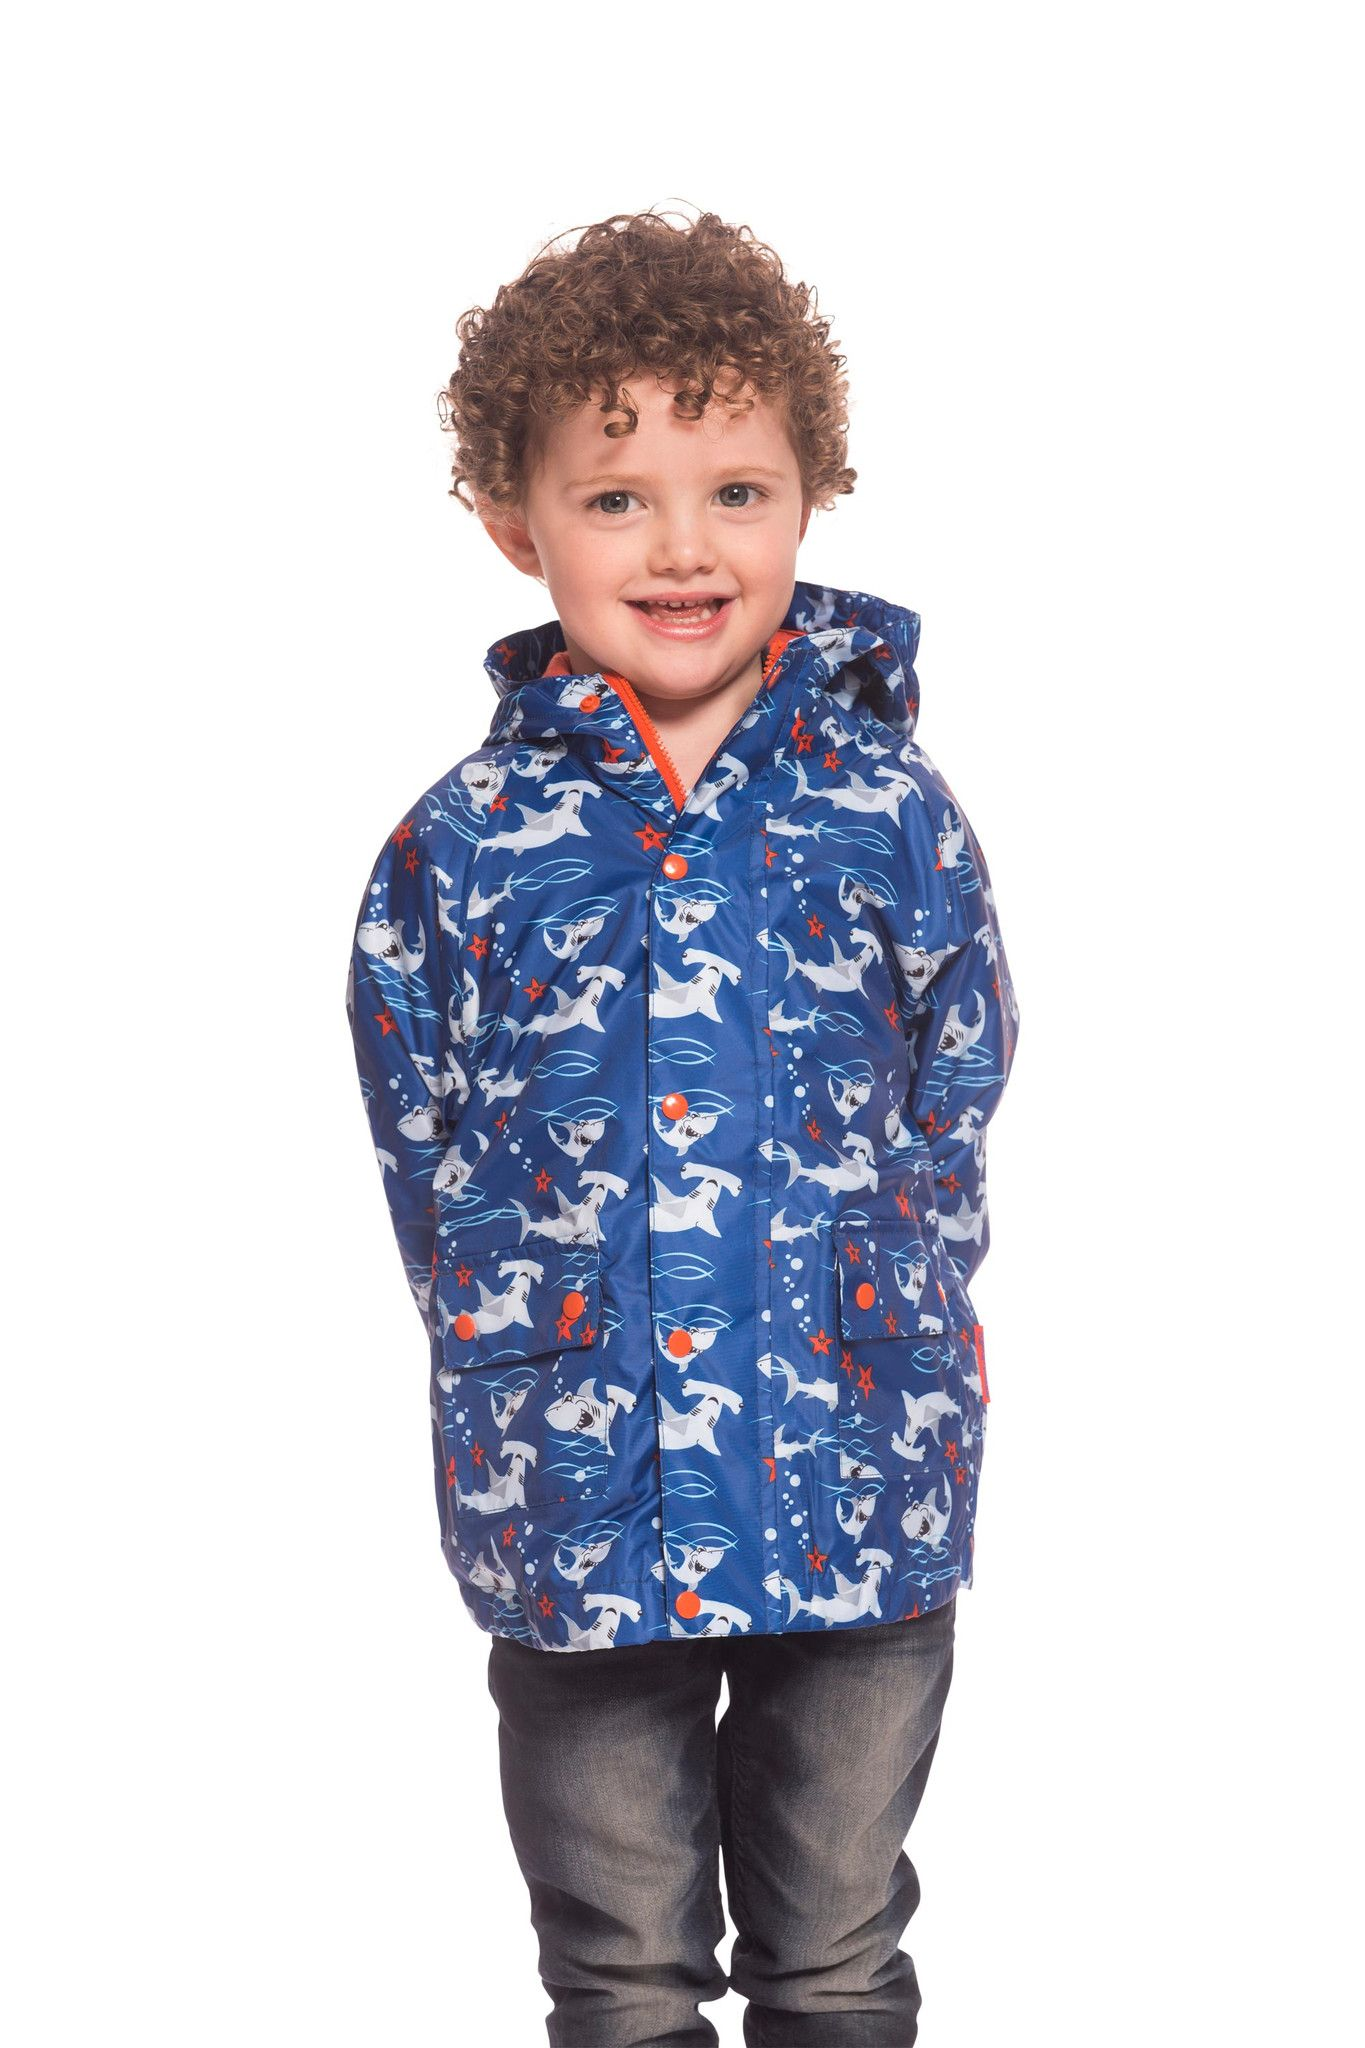 ee12d81f Oscar Boys Hooded Jersey Lined Printed Rain Jacket | Target Dry